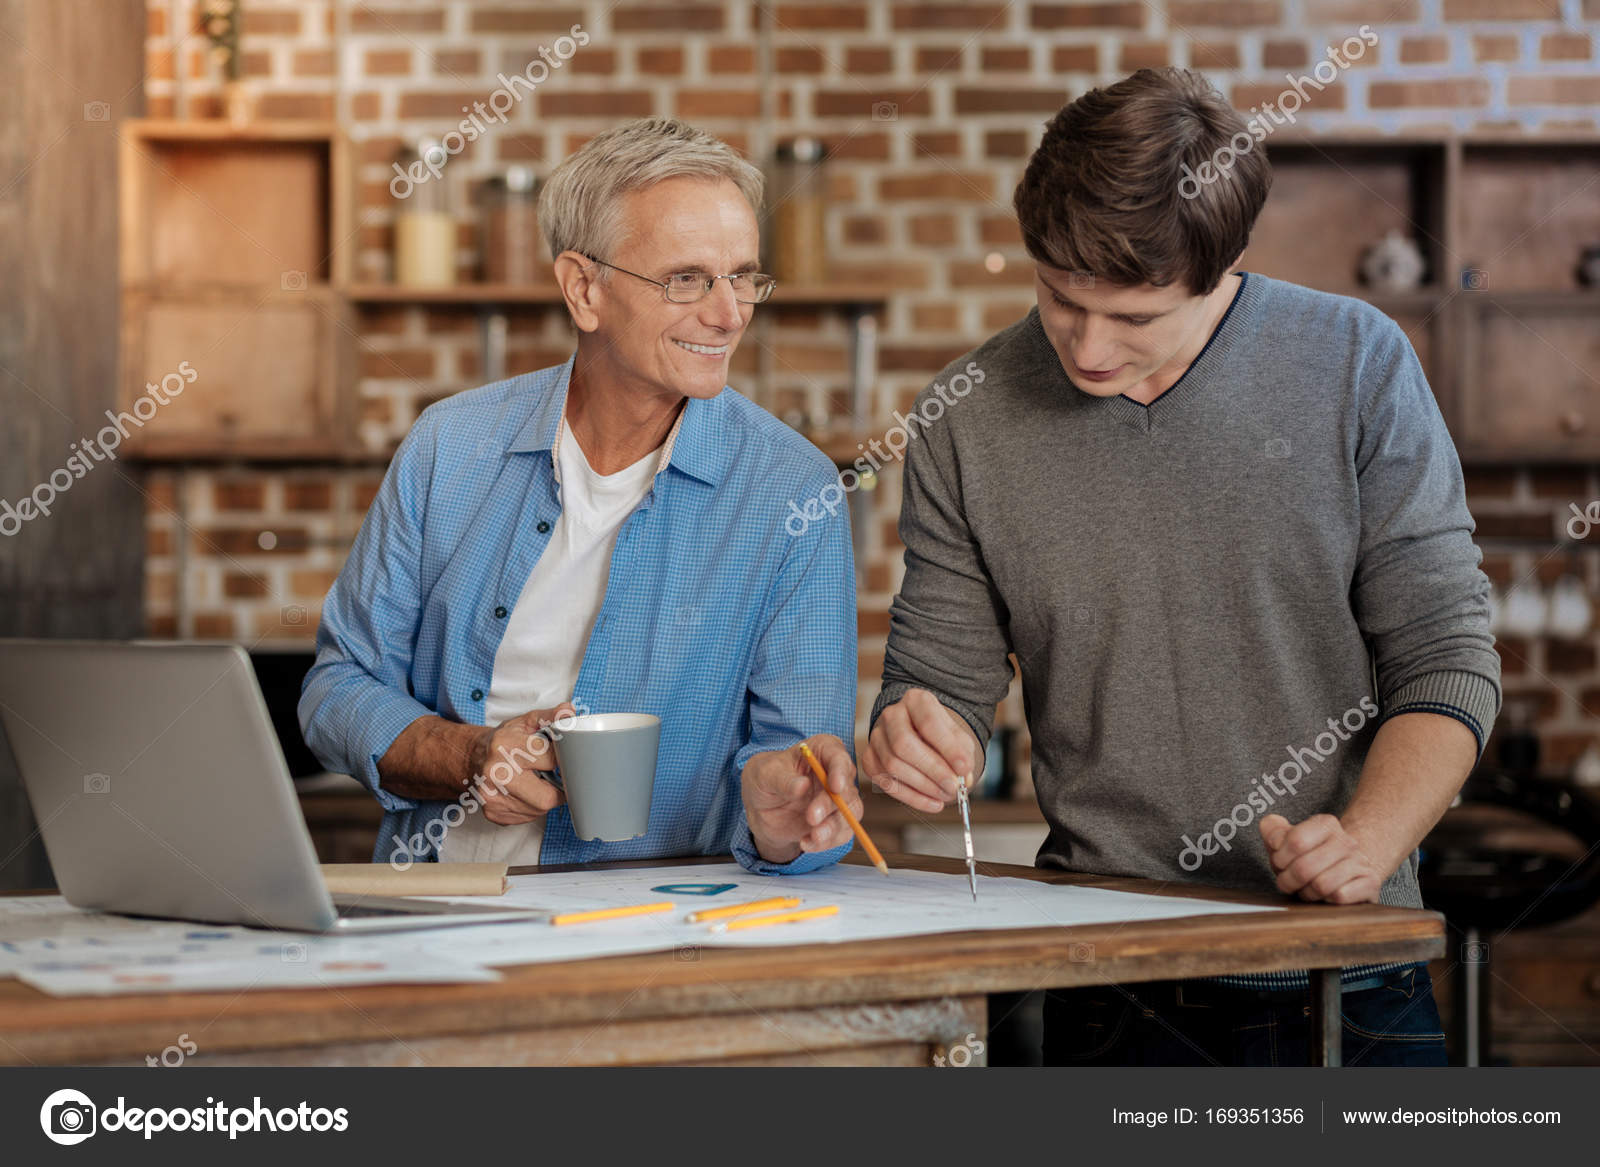 Pleasant mentor helping young colleague draw blueprint stock pleasant senior mentor holding a cup of coffee and helping his young colleague draw a blueprint by pointing at a place requiring correction photo by malvernweather Images